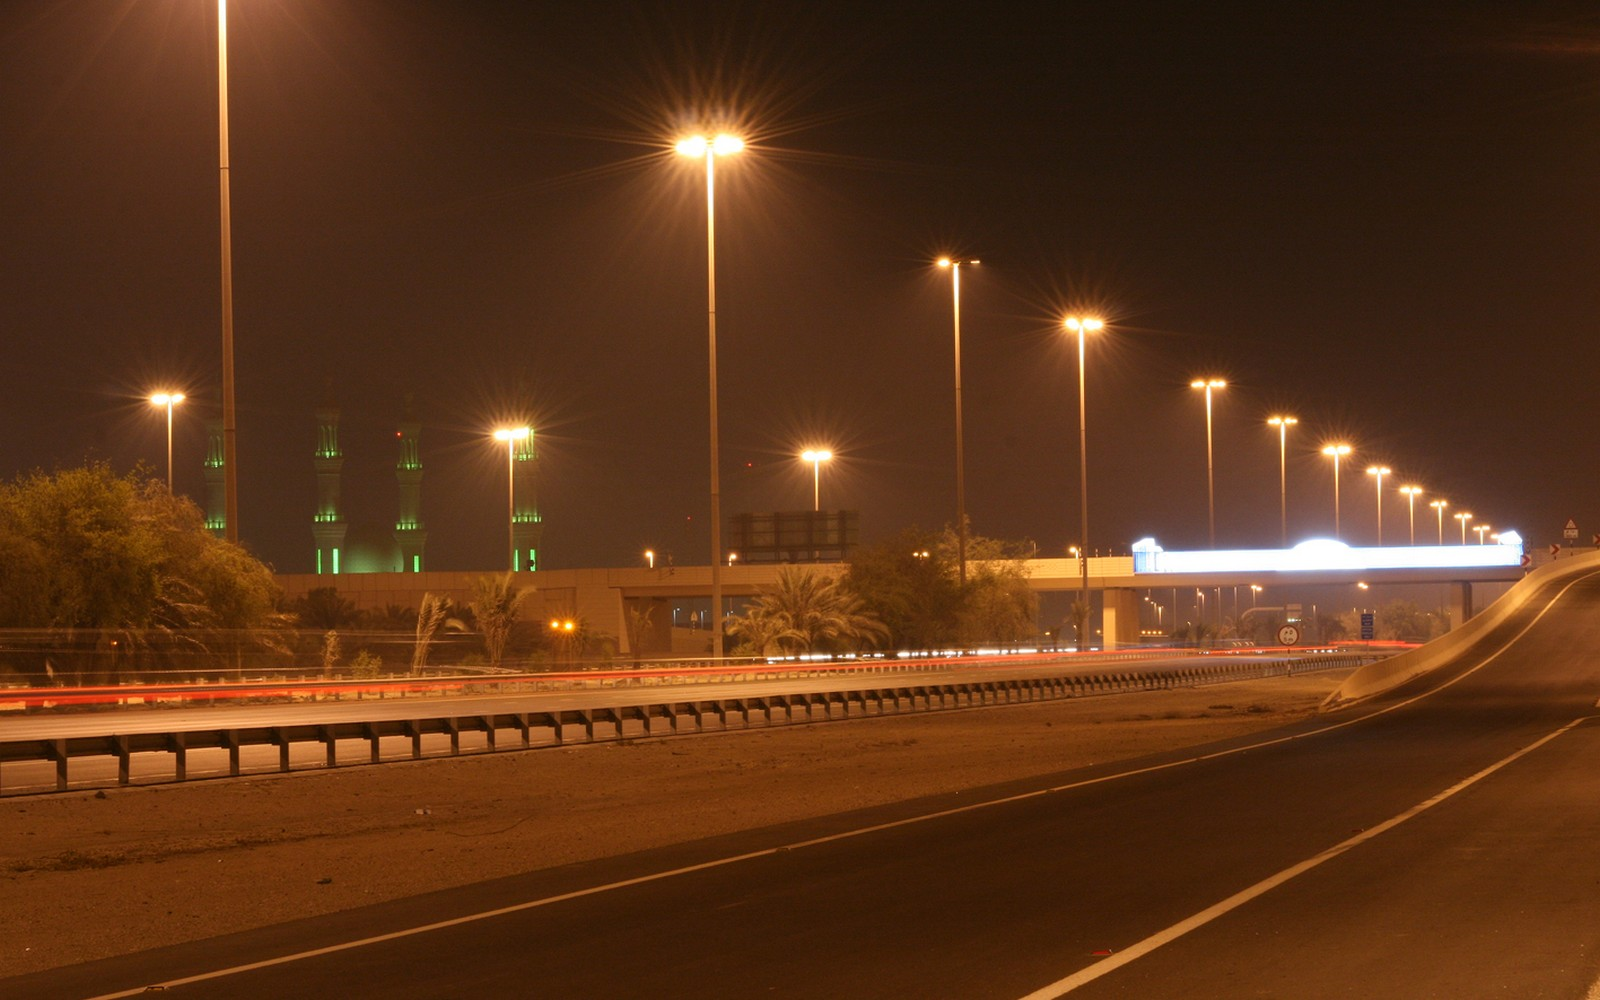 AL JABER LIGHTING